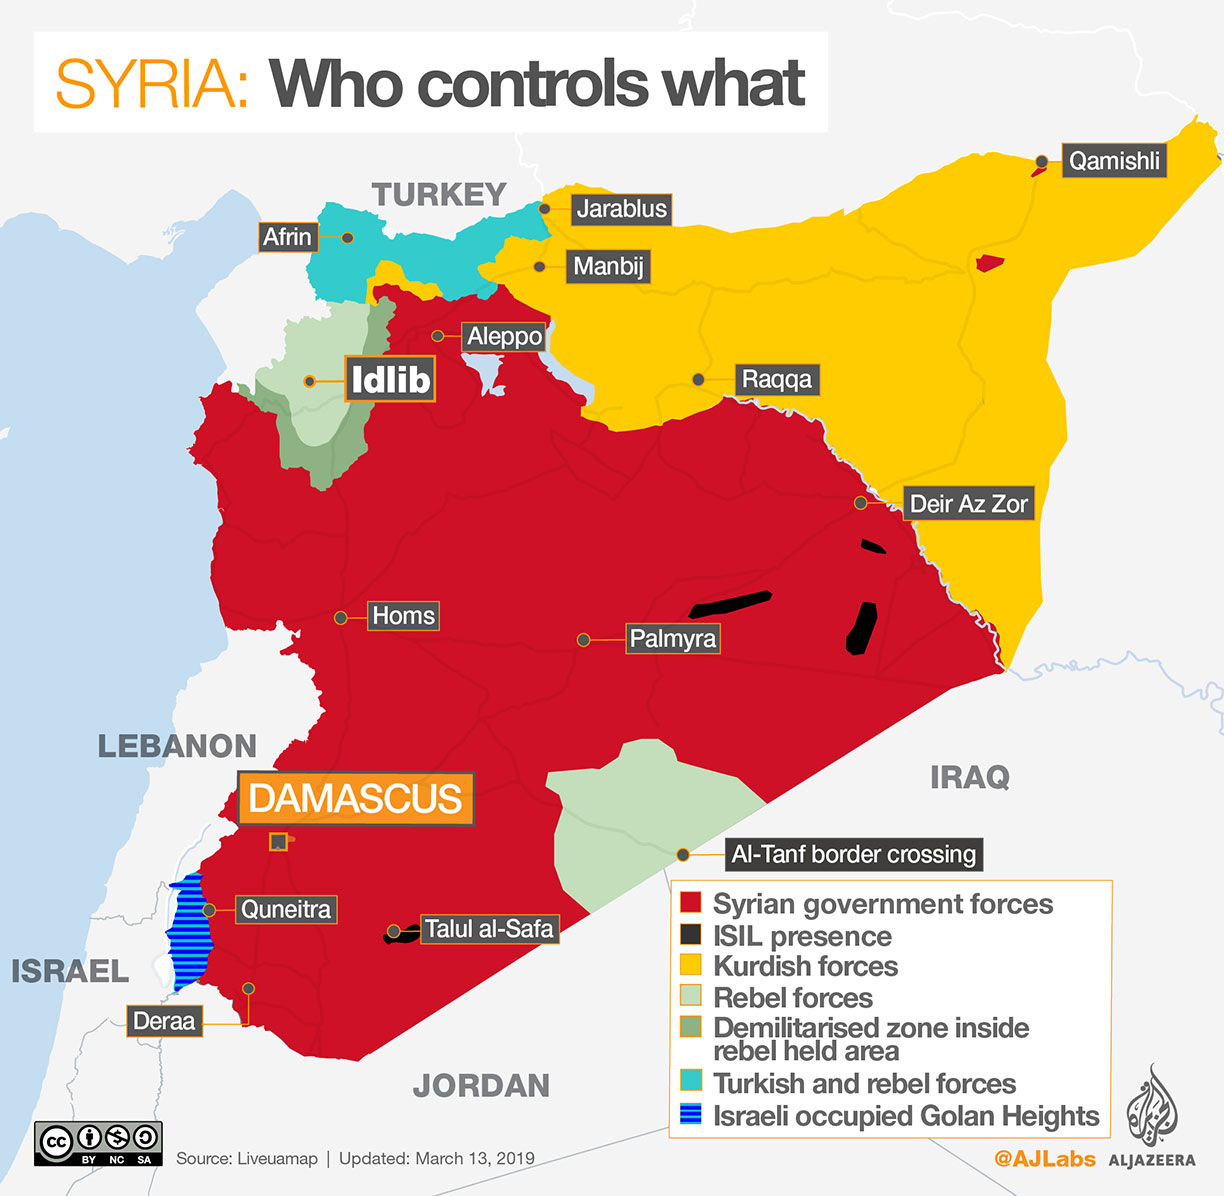 Map of Syrian war showing the location of the diverse occupied territories